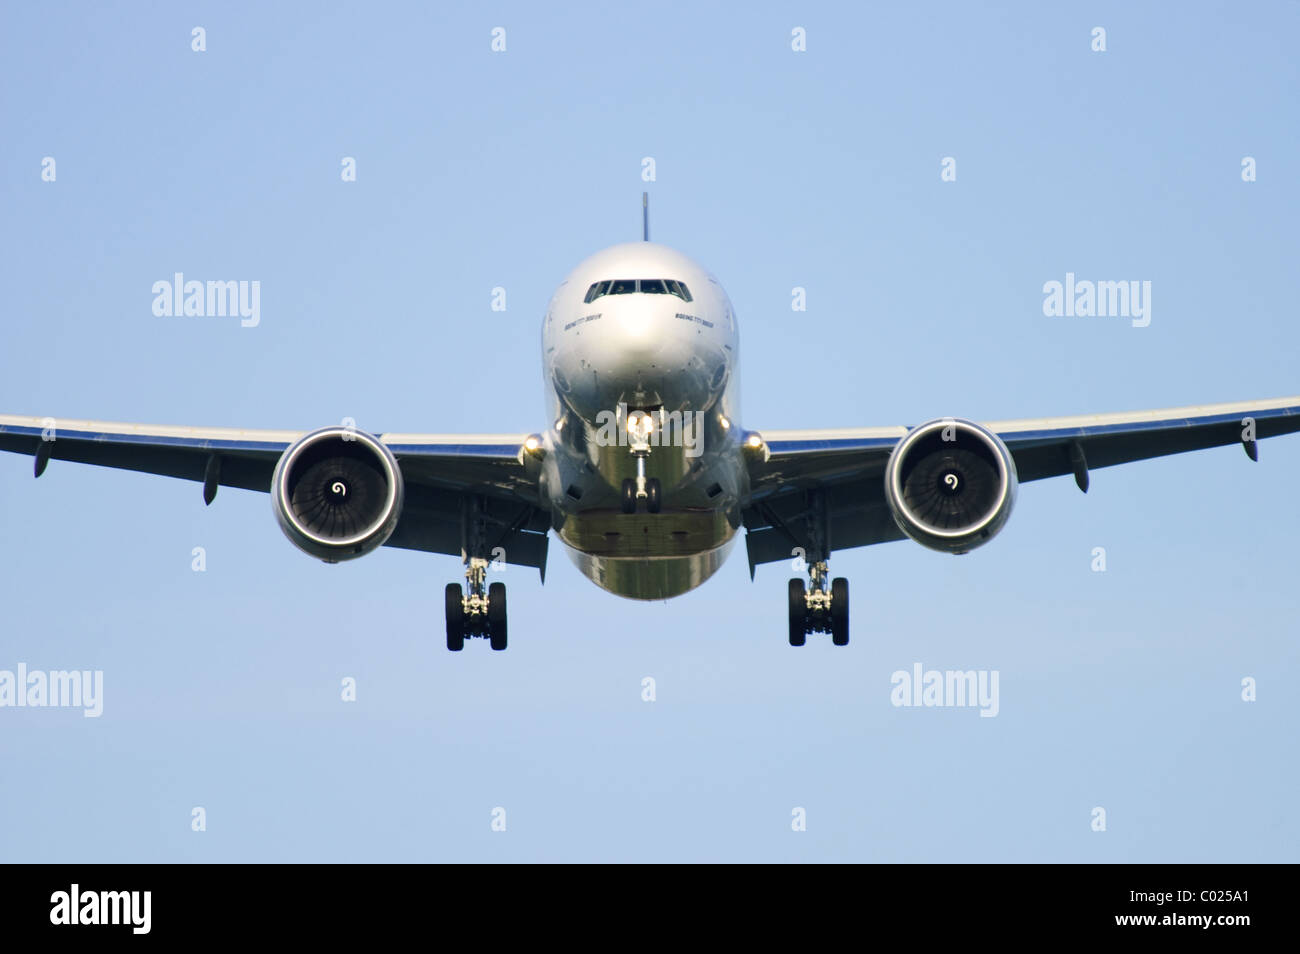 Heathrow runway approach by Boeing 777 plane seen head on on finals for landing at London Heathrow Airport, UK. - Stock Image